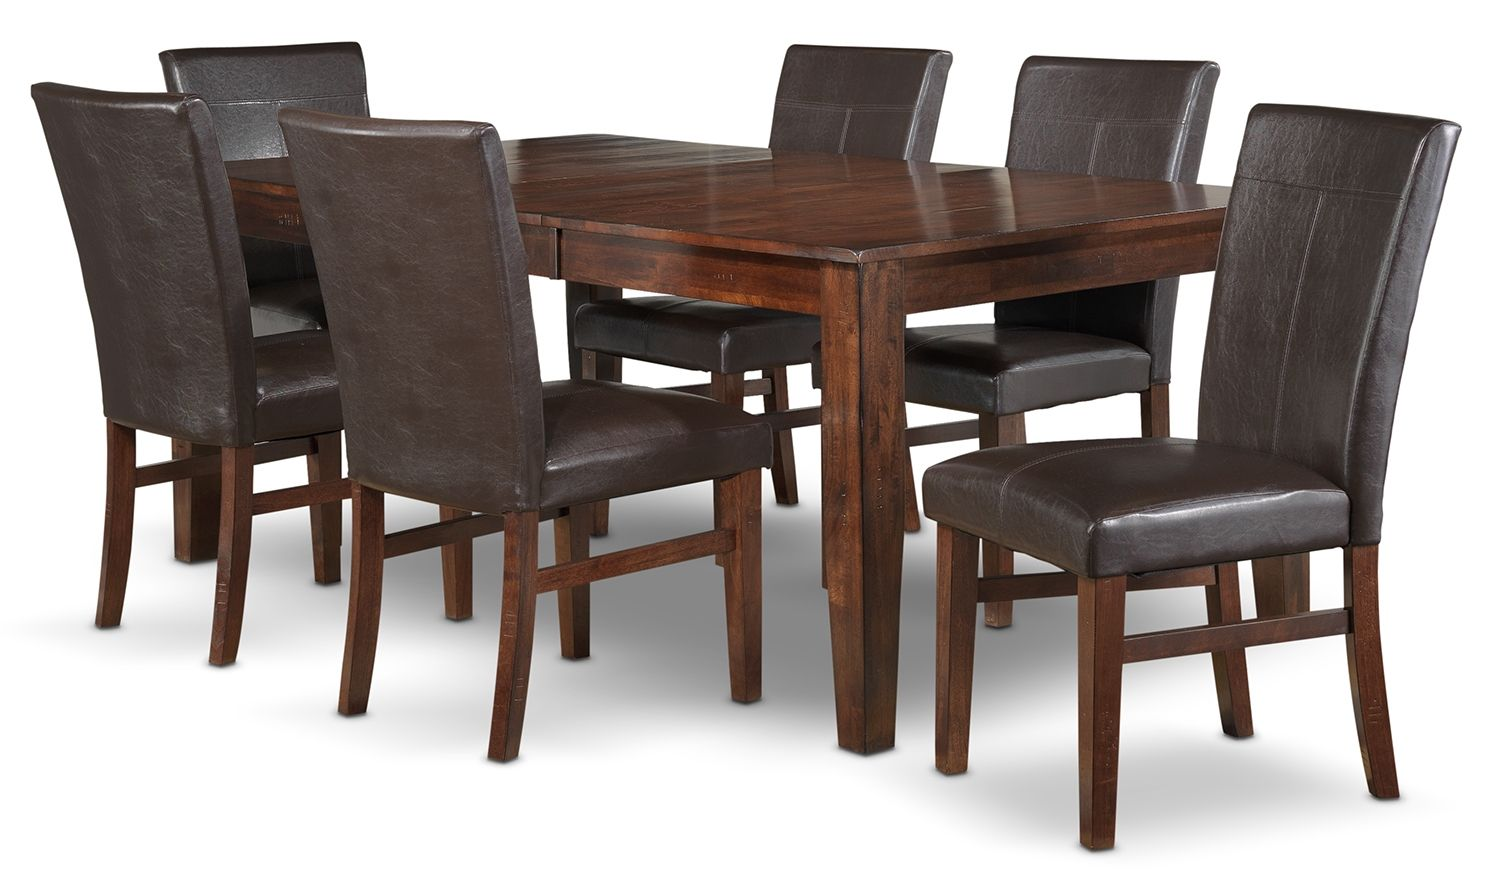 Elect To Receive Big Savings On Leons Dining Room Packages